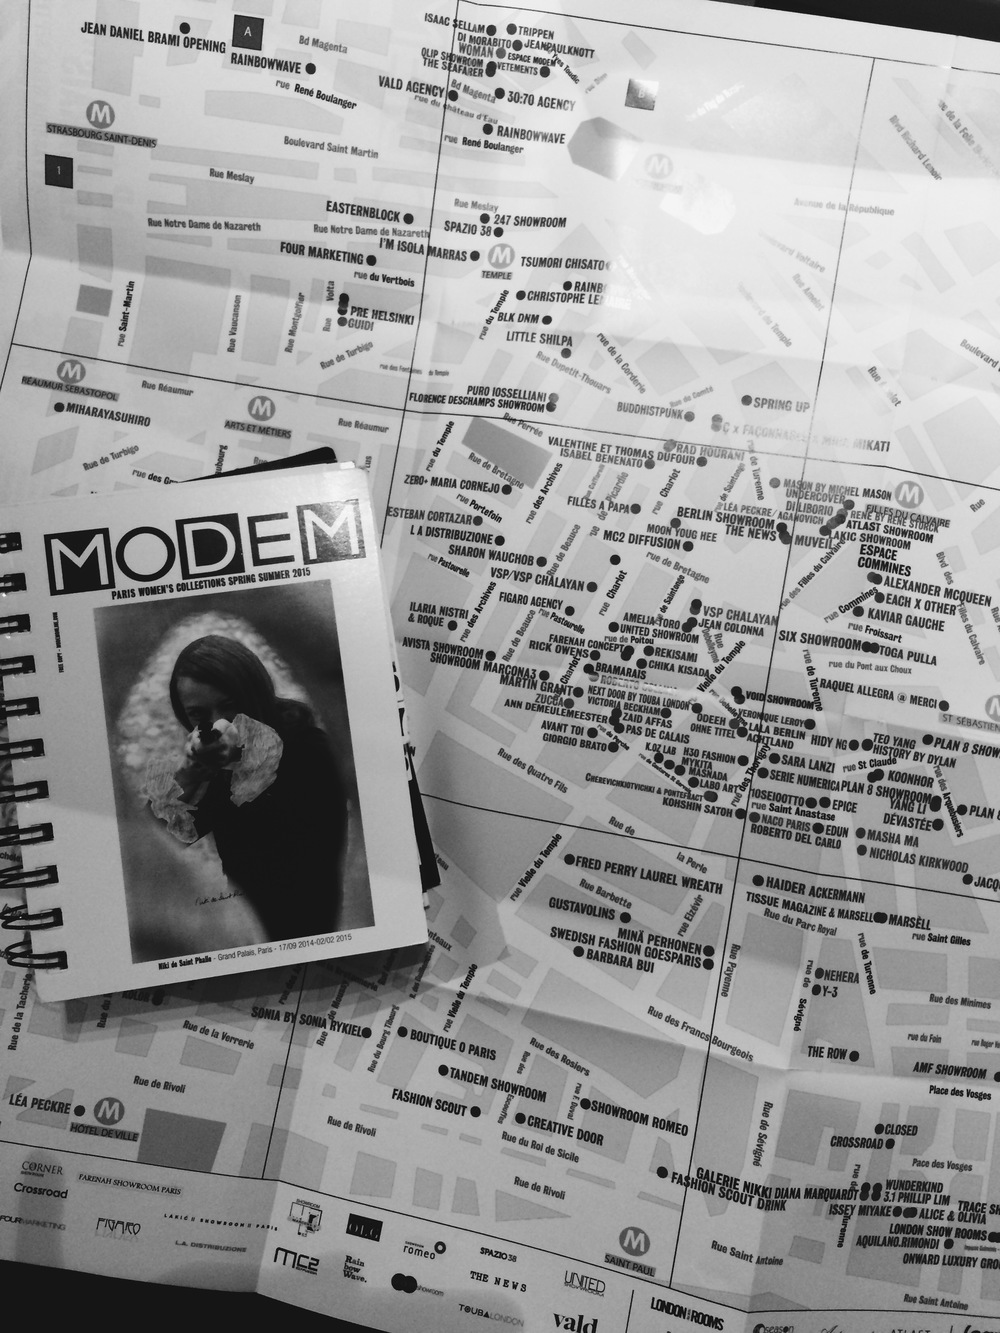 PFW bible - book of shows/events with map